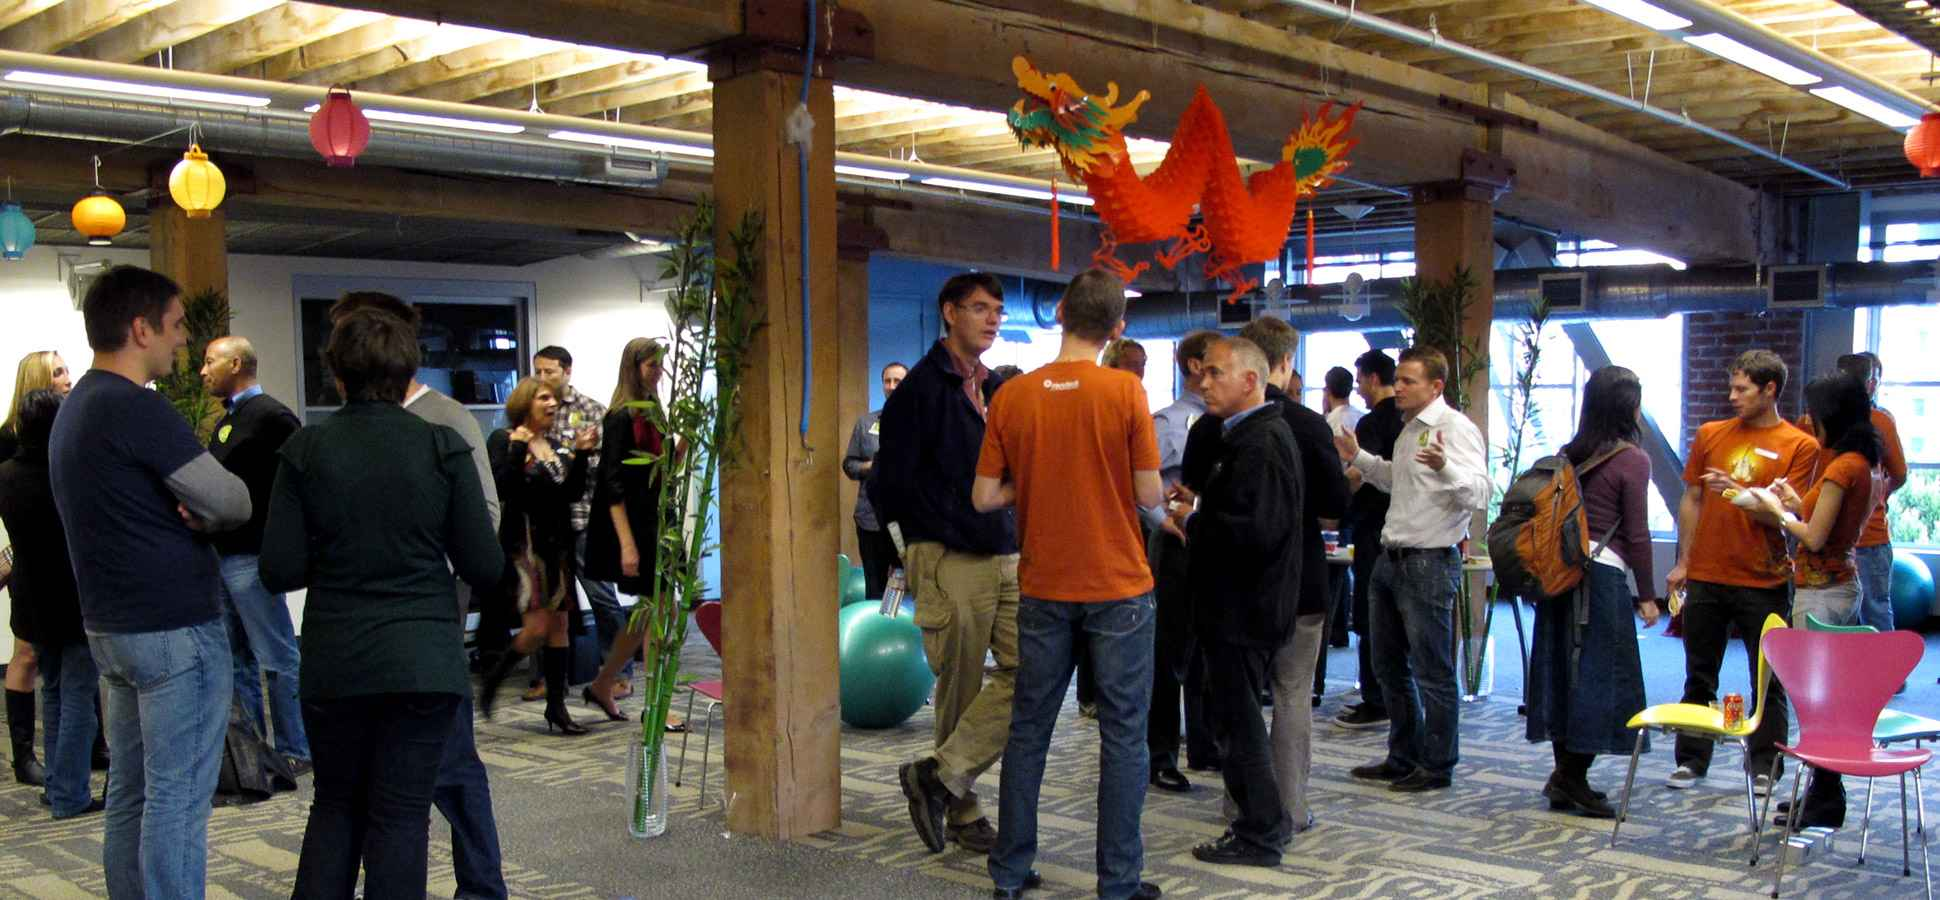 7 Ways Your Maturing Company Can Maintain a Startup Culture